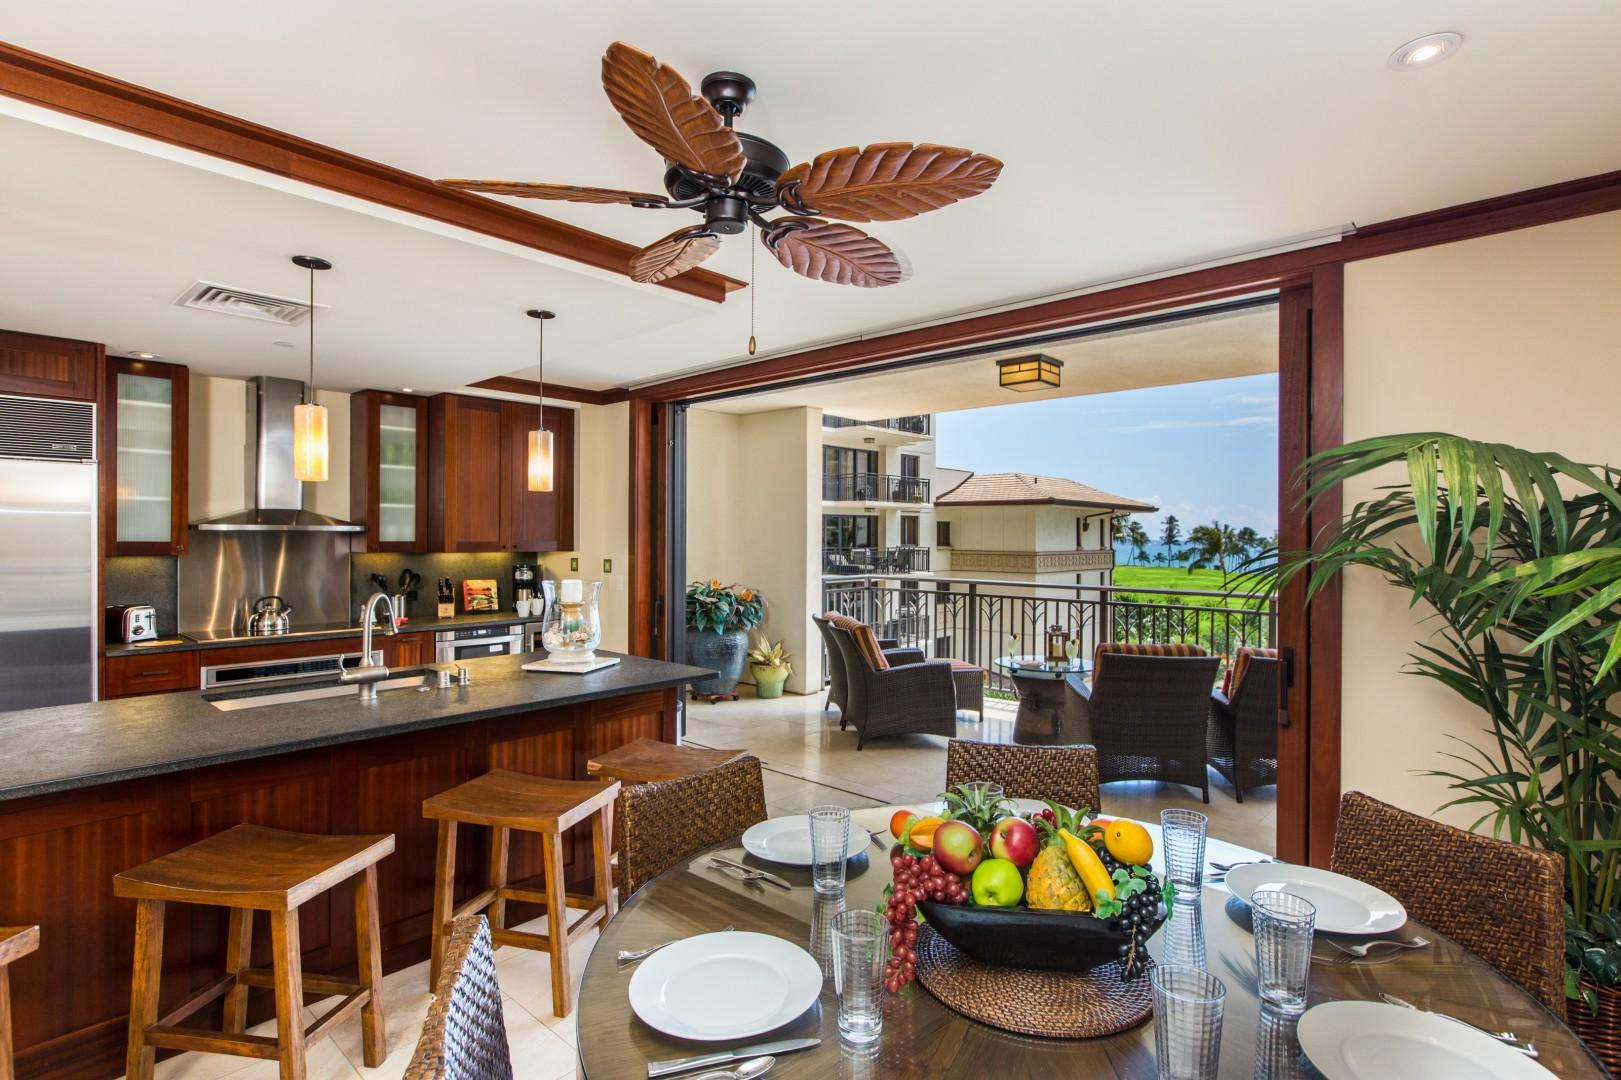 Open concept kitchen, living and dining areas blend indoor and outdoor living when pocket lanai doors are fully opened